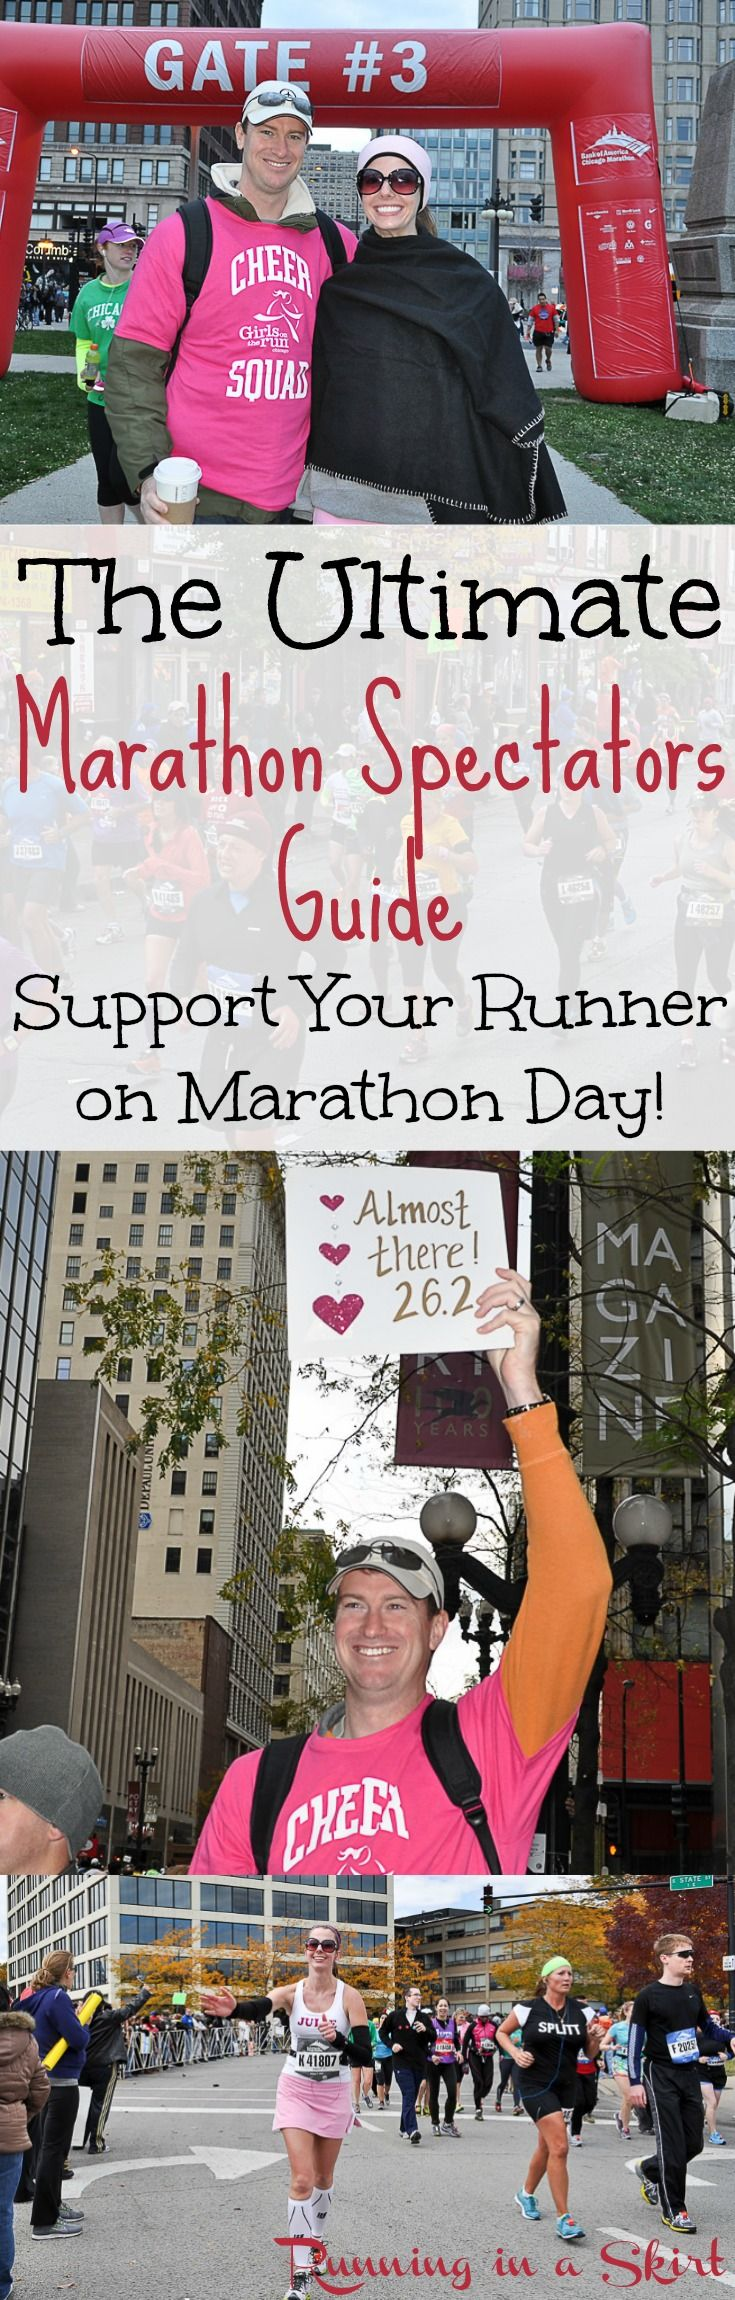 The Ultimate Marathon Spectators Guide!  Marathon tips to support a loved one running a big city marathon.  From signs, ways to actually see your runners along the course, an outfit to get noticed or ways to just have an awesome fun time this guide has it all!  Great for any marathon, but features the Chicago Marathon.  Use for New York or any other city.  Bucket list! / Running in a Skirt